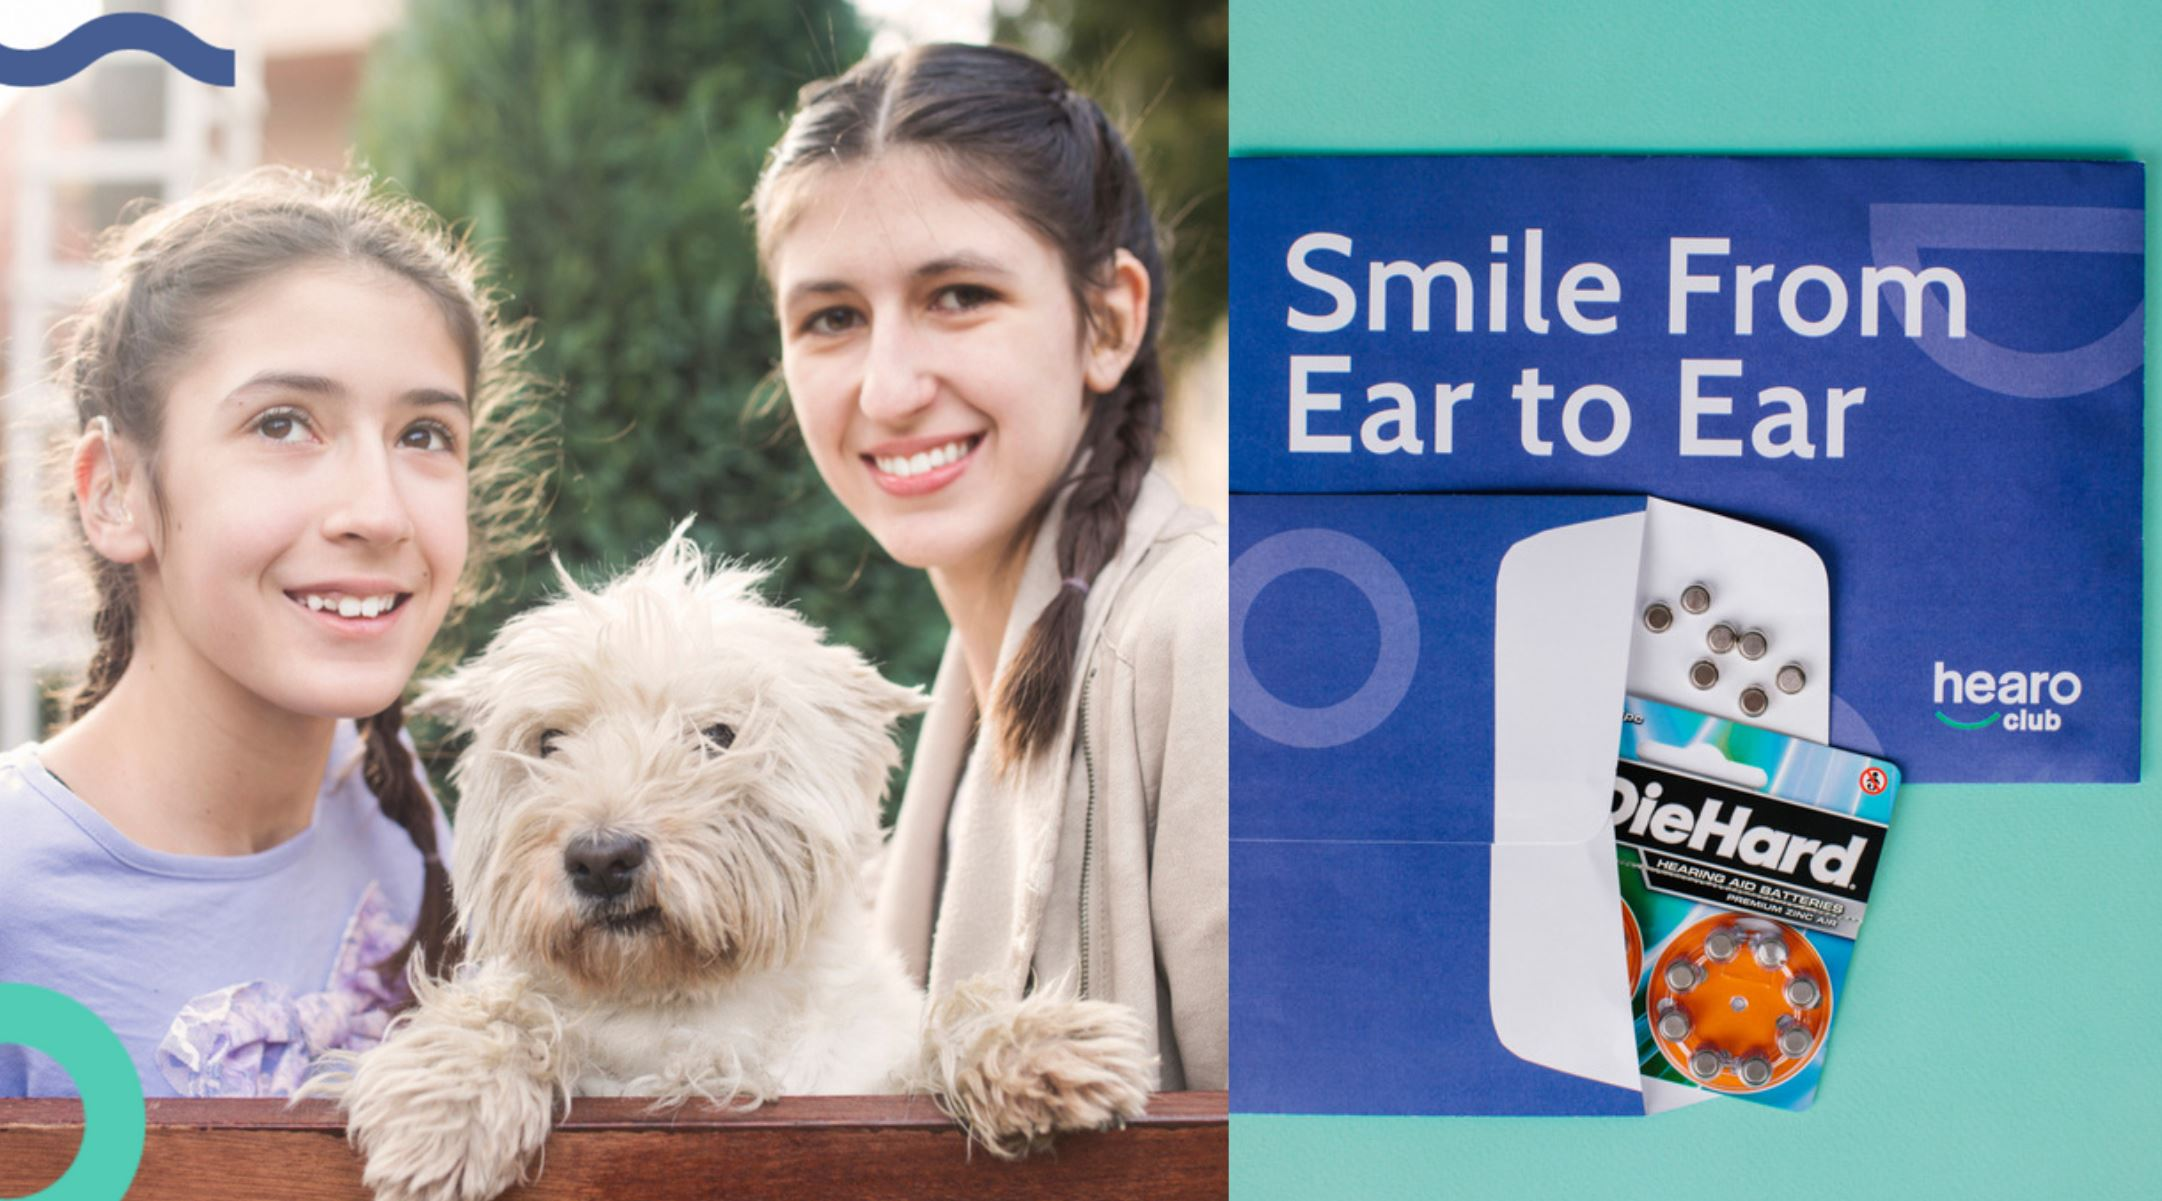 Girls with hearing aids and dog next to pack of hearing aid batteries